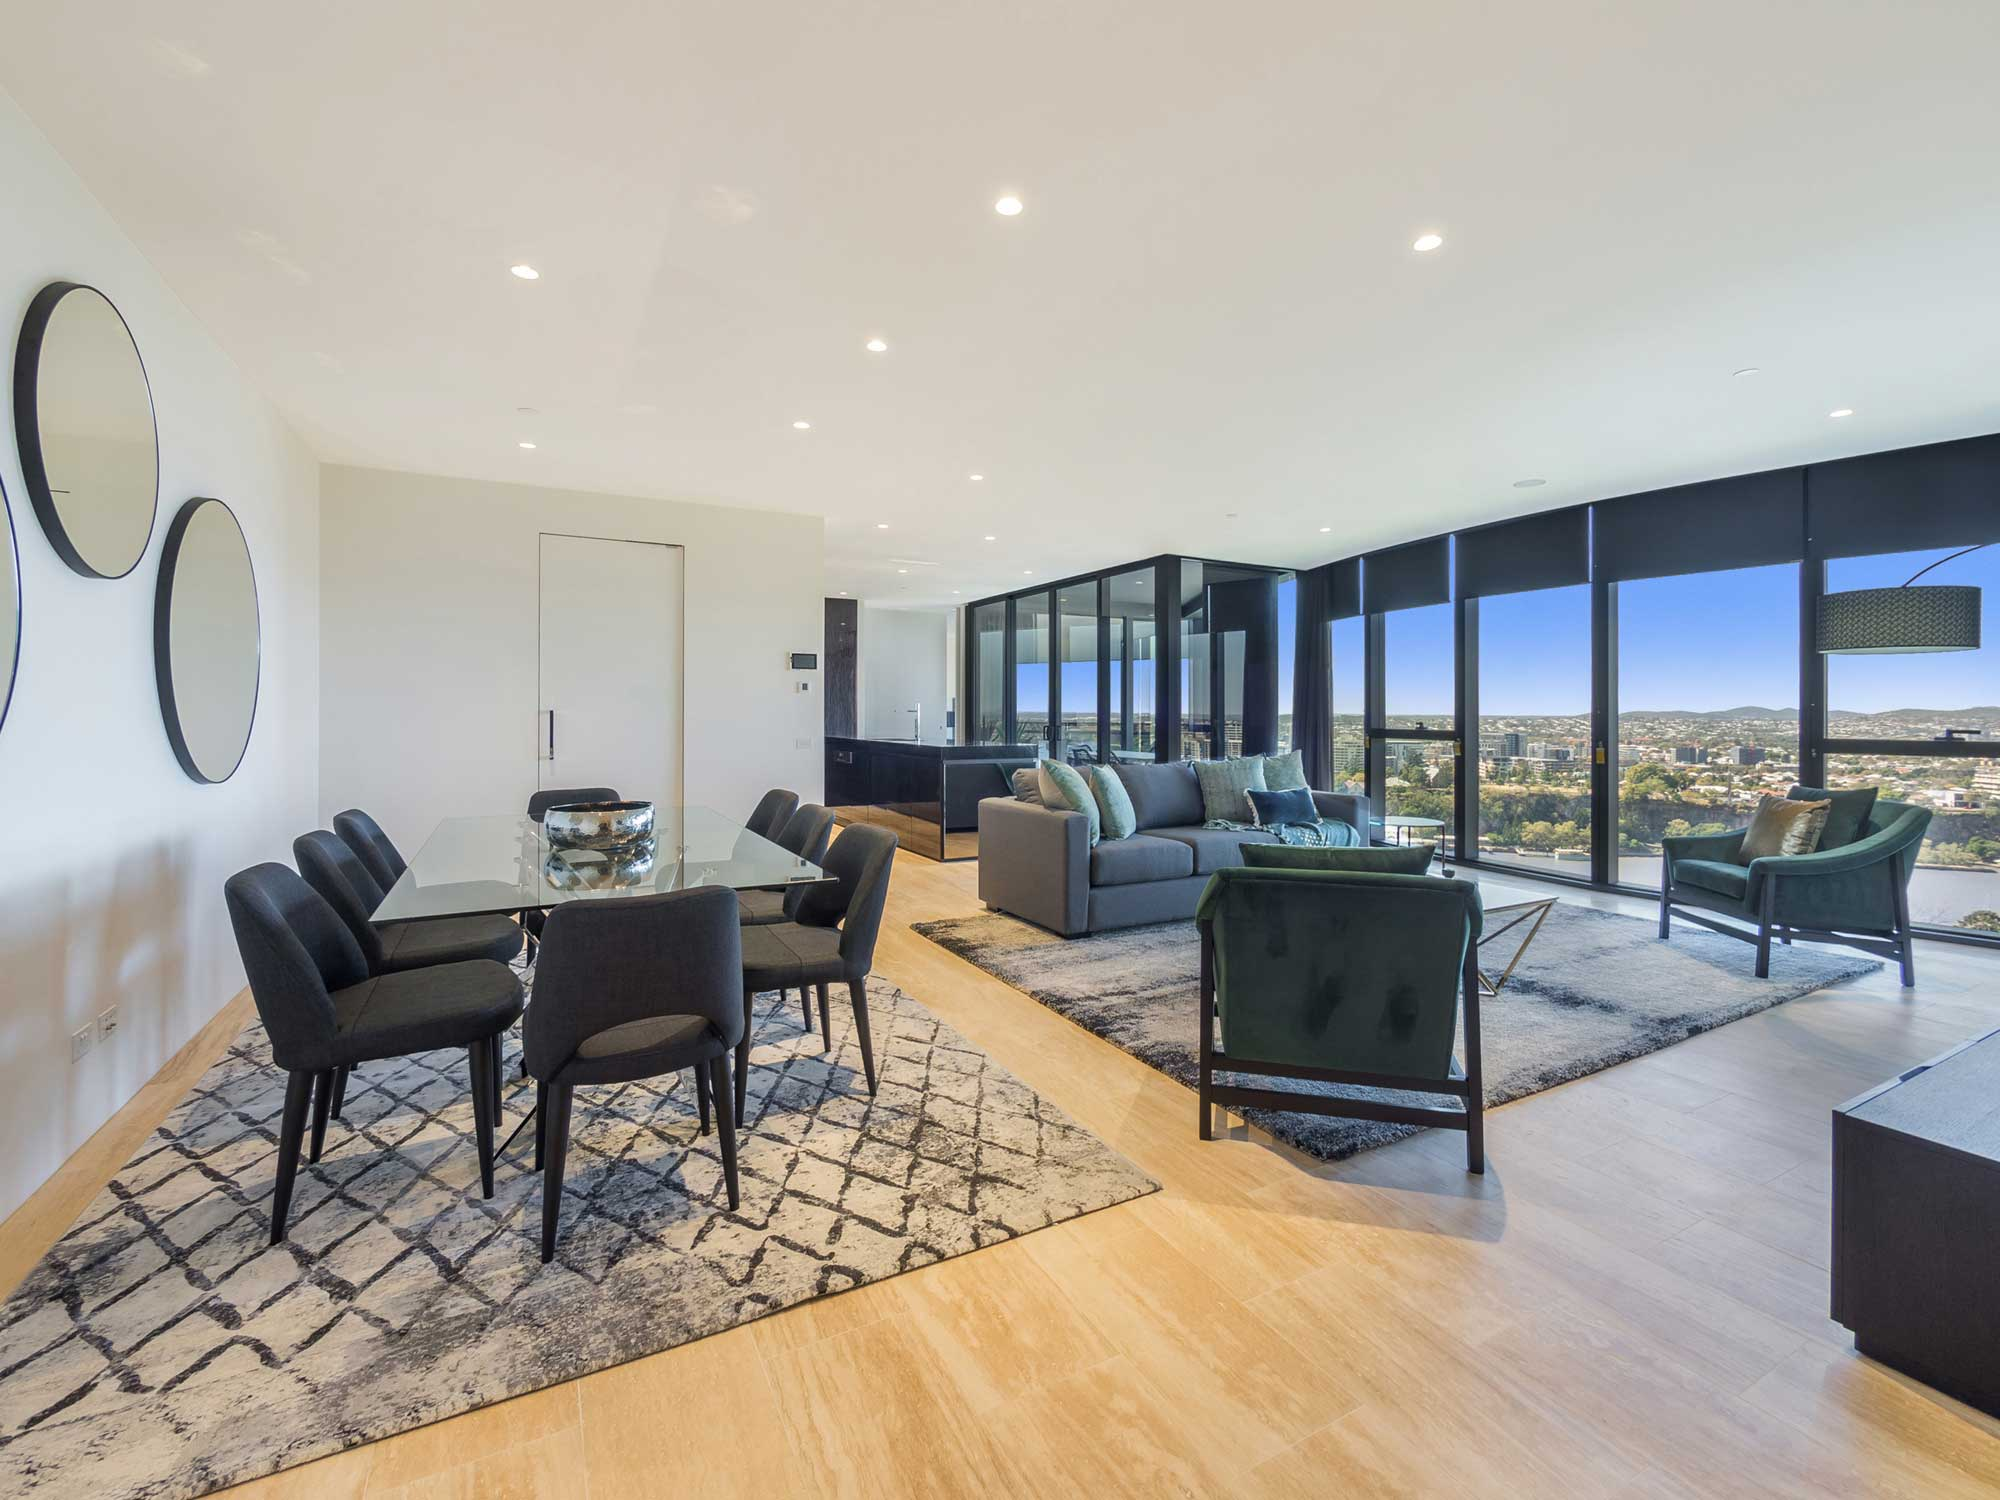 Prestige penthouse apartment photography - Abian Apartments near the Botanic Gardens